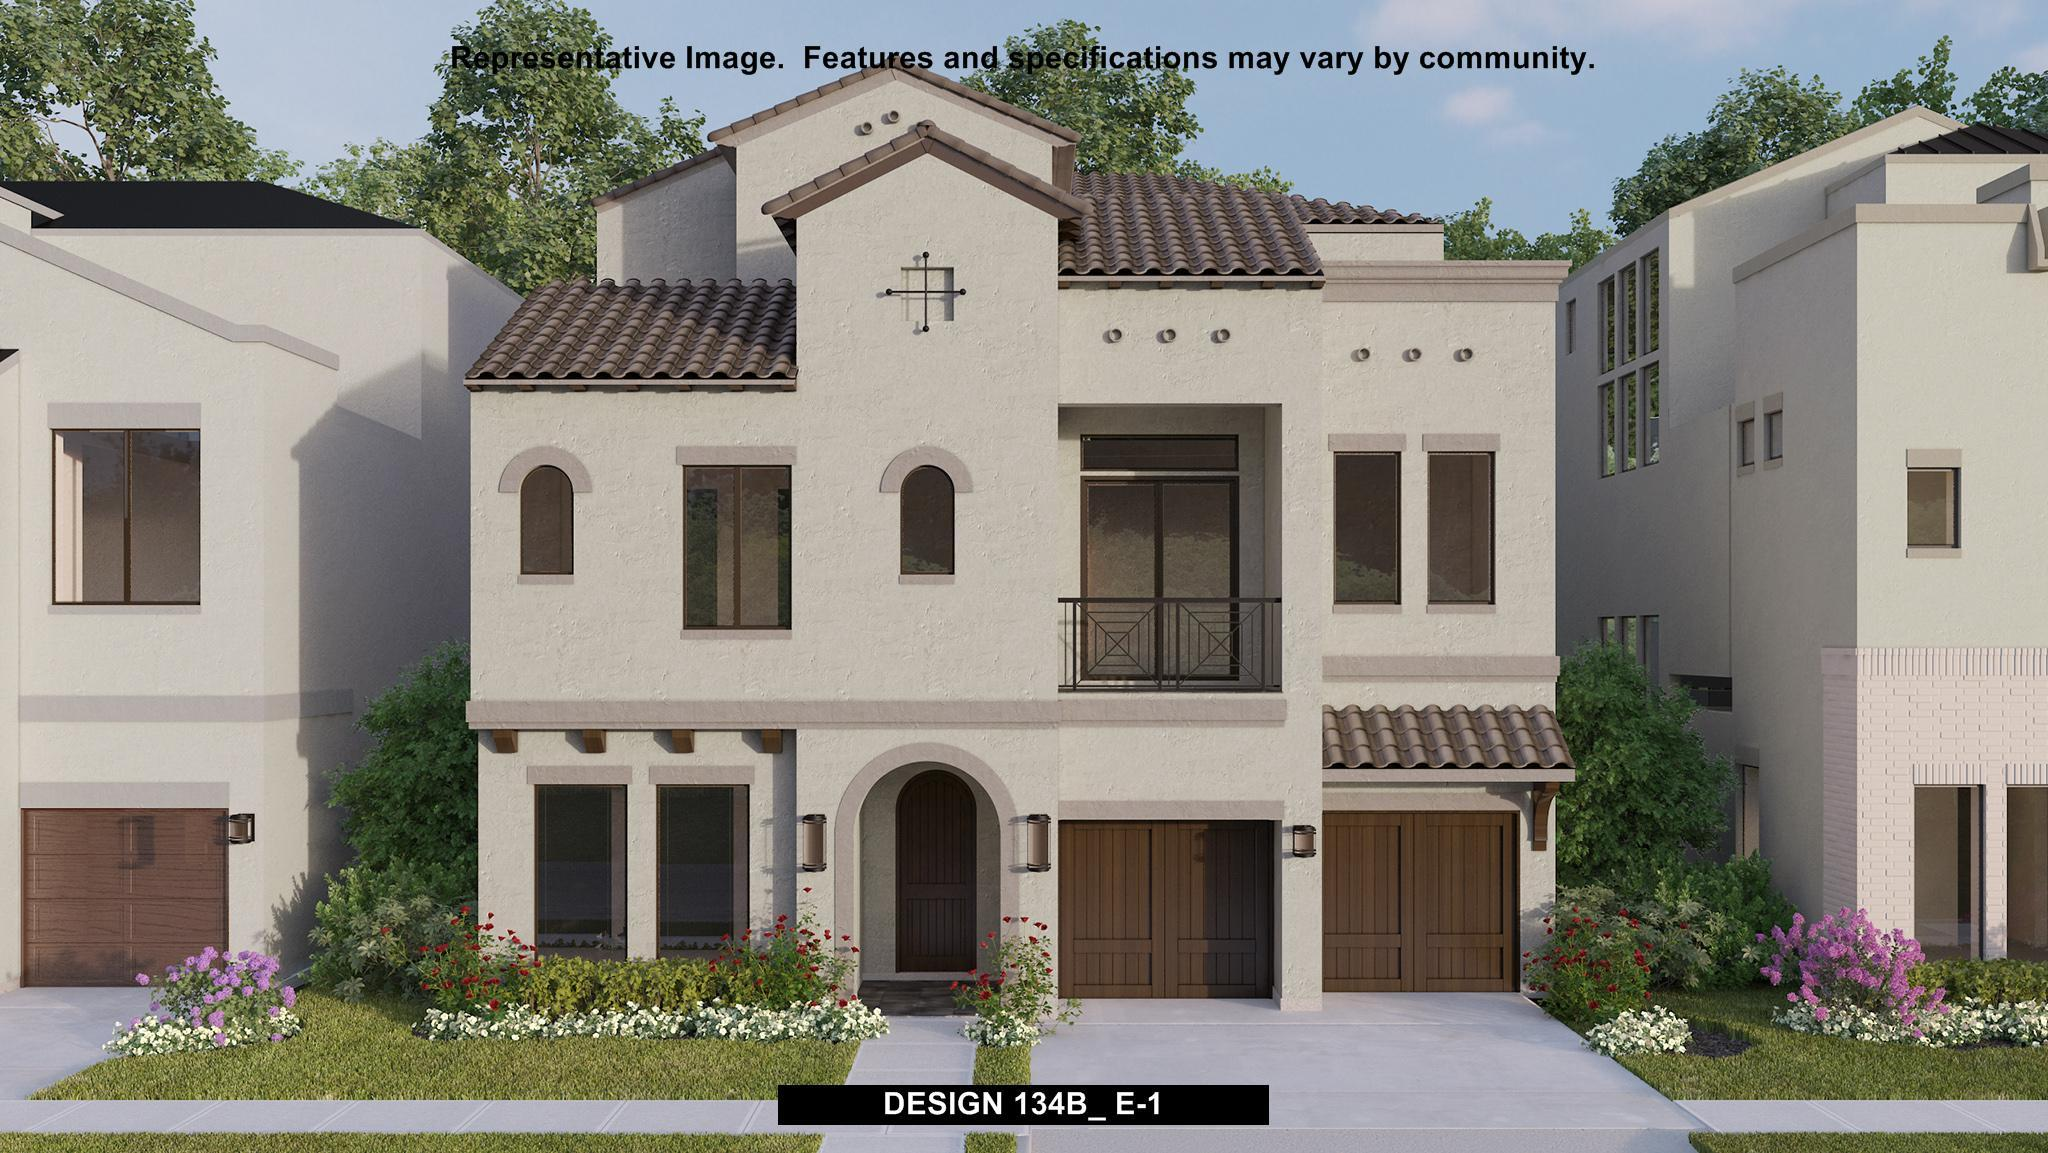 Single Family for Sale at Villas At Legacy West - 134b 6121 Echelon Way Plano, Texas 75024 United States